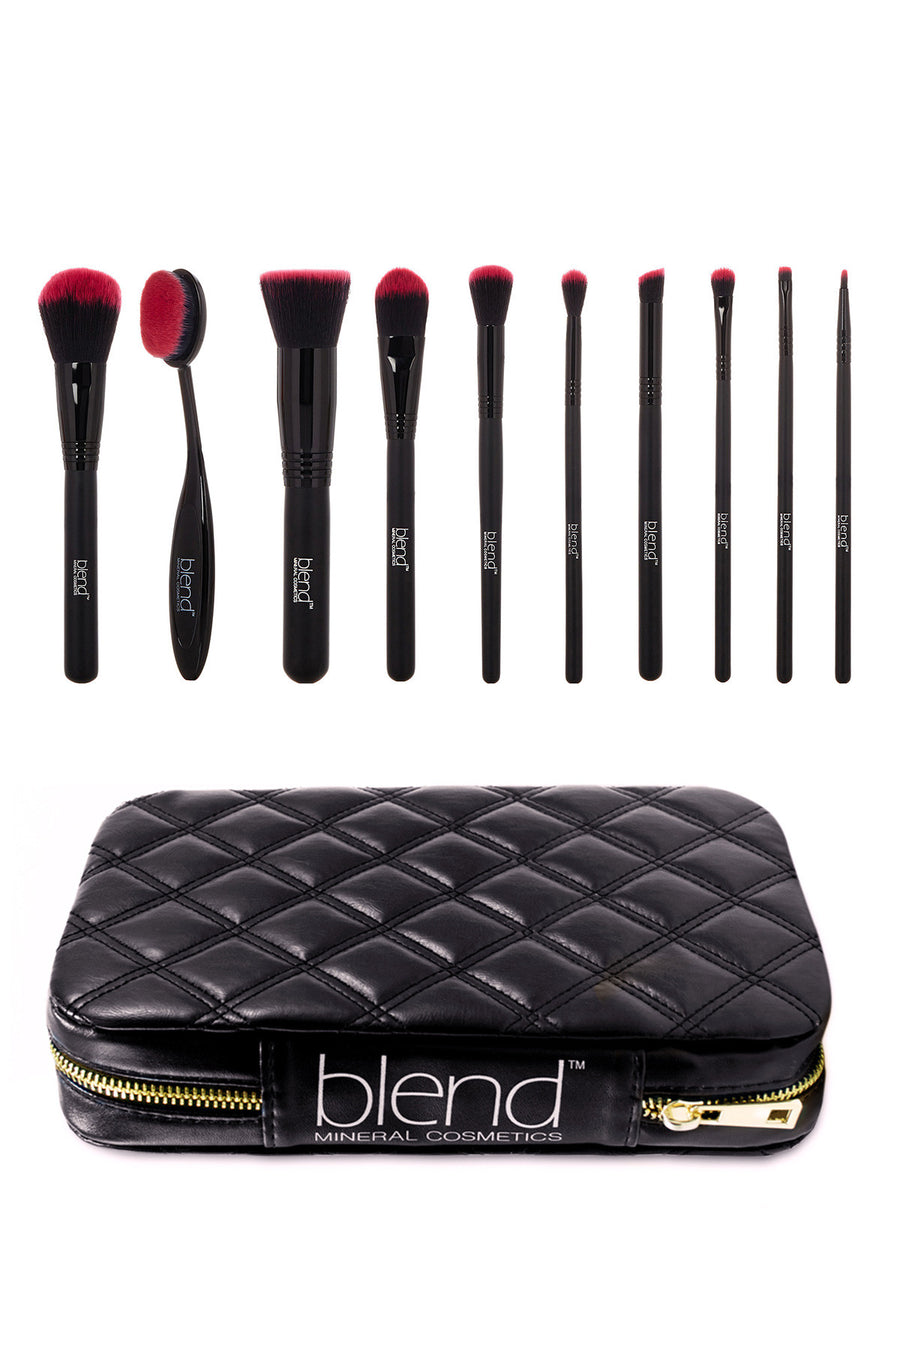 Professional Makeup Artist Complete 11-Piece Brush Kit - Pink - Blend Mineral Cosmetics